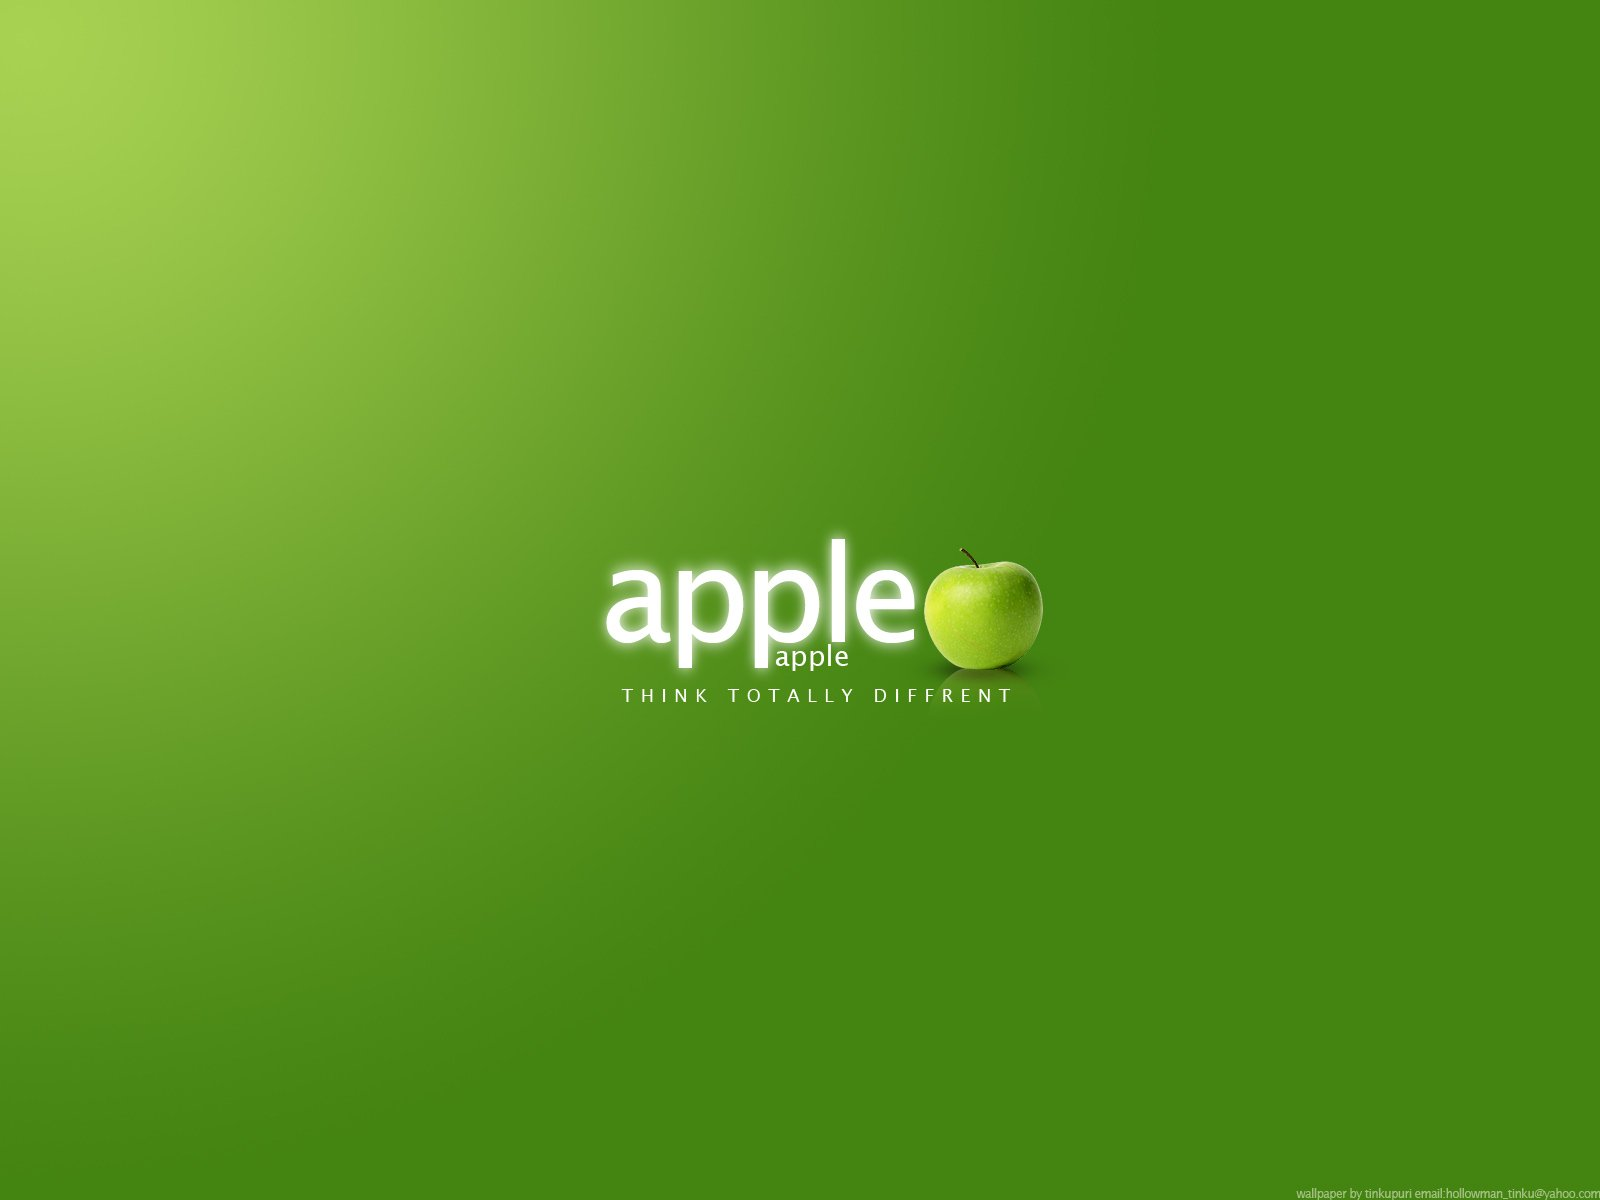 Wallpaper green background - Apple fans